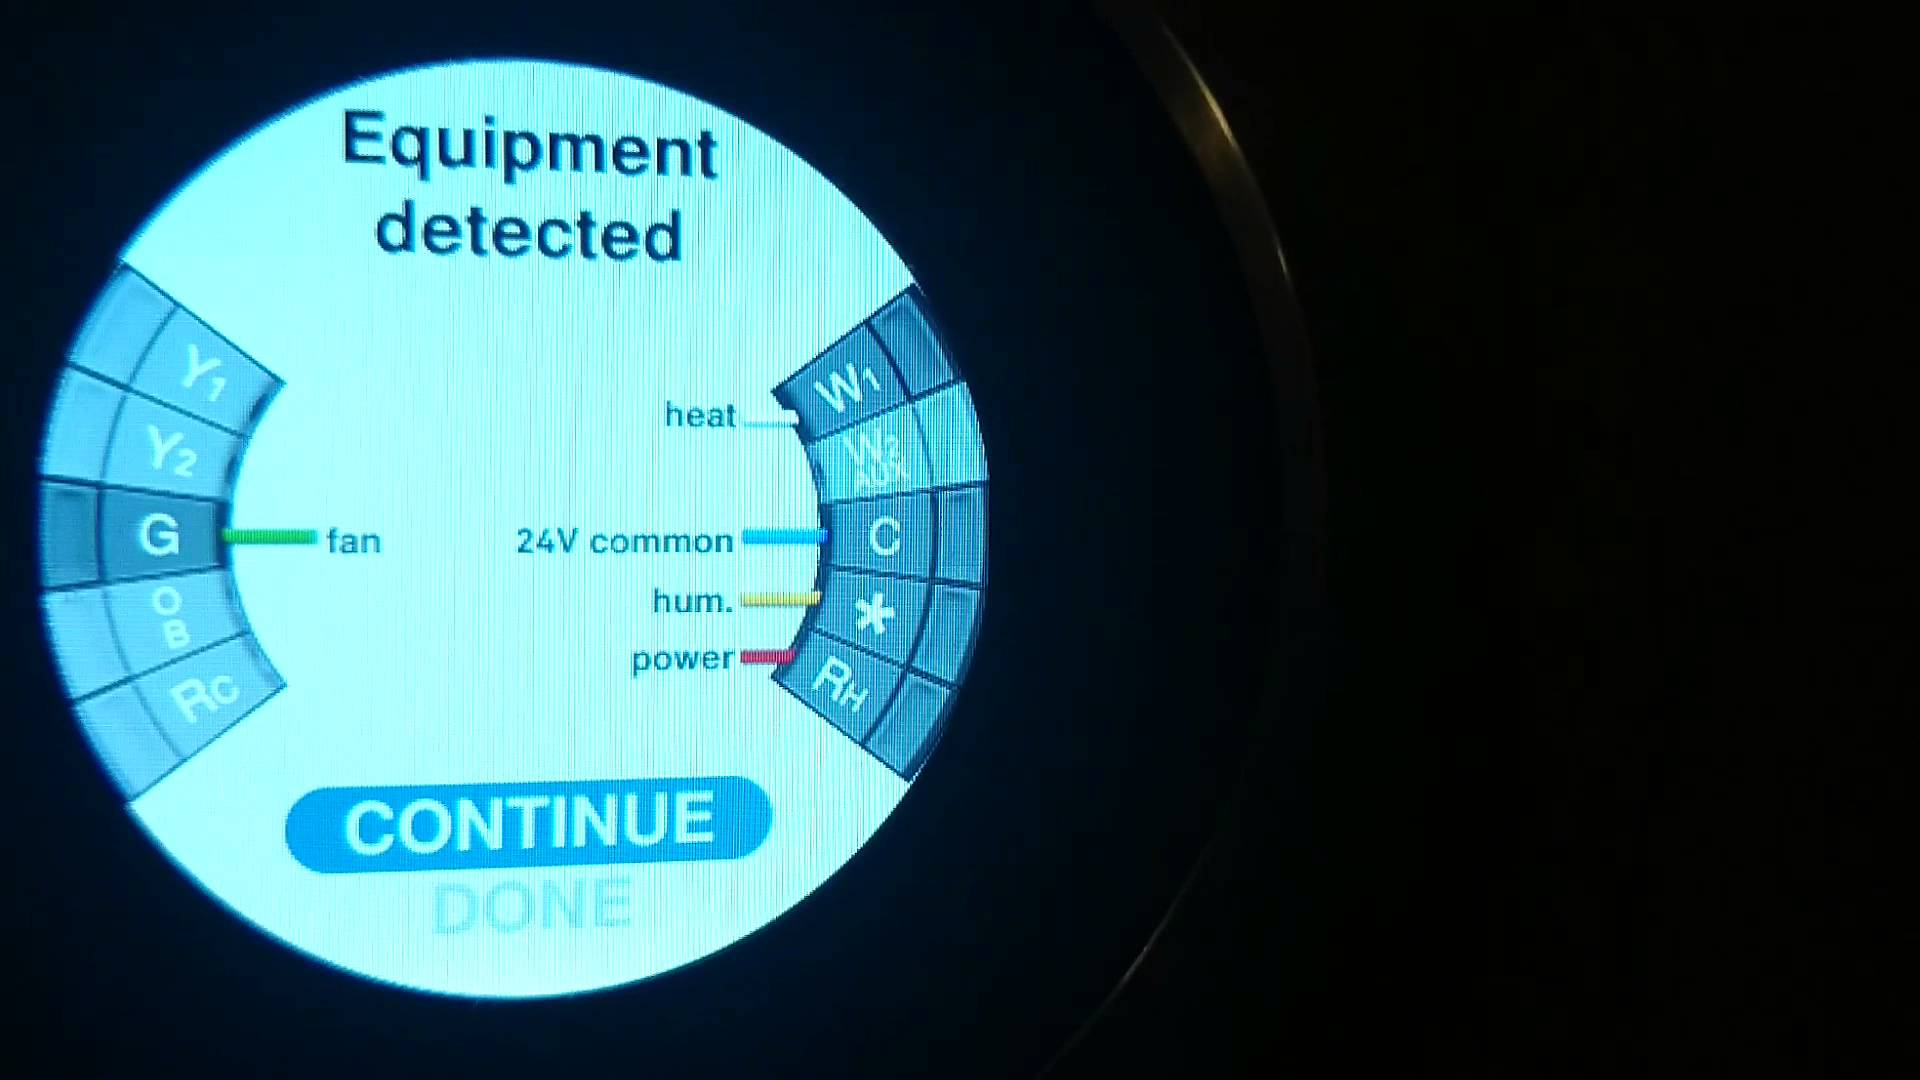 Wiring Diagram For Nest Thermostat With Humidifier - Wiring Diagrams - 4 Wire Nest Wiring Diagram